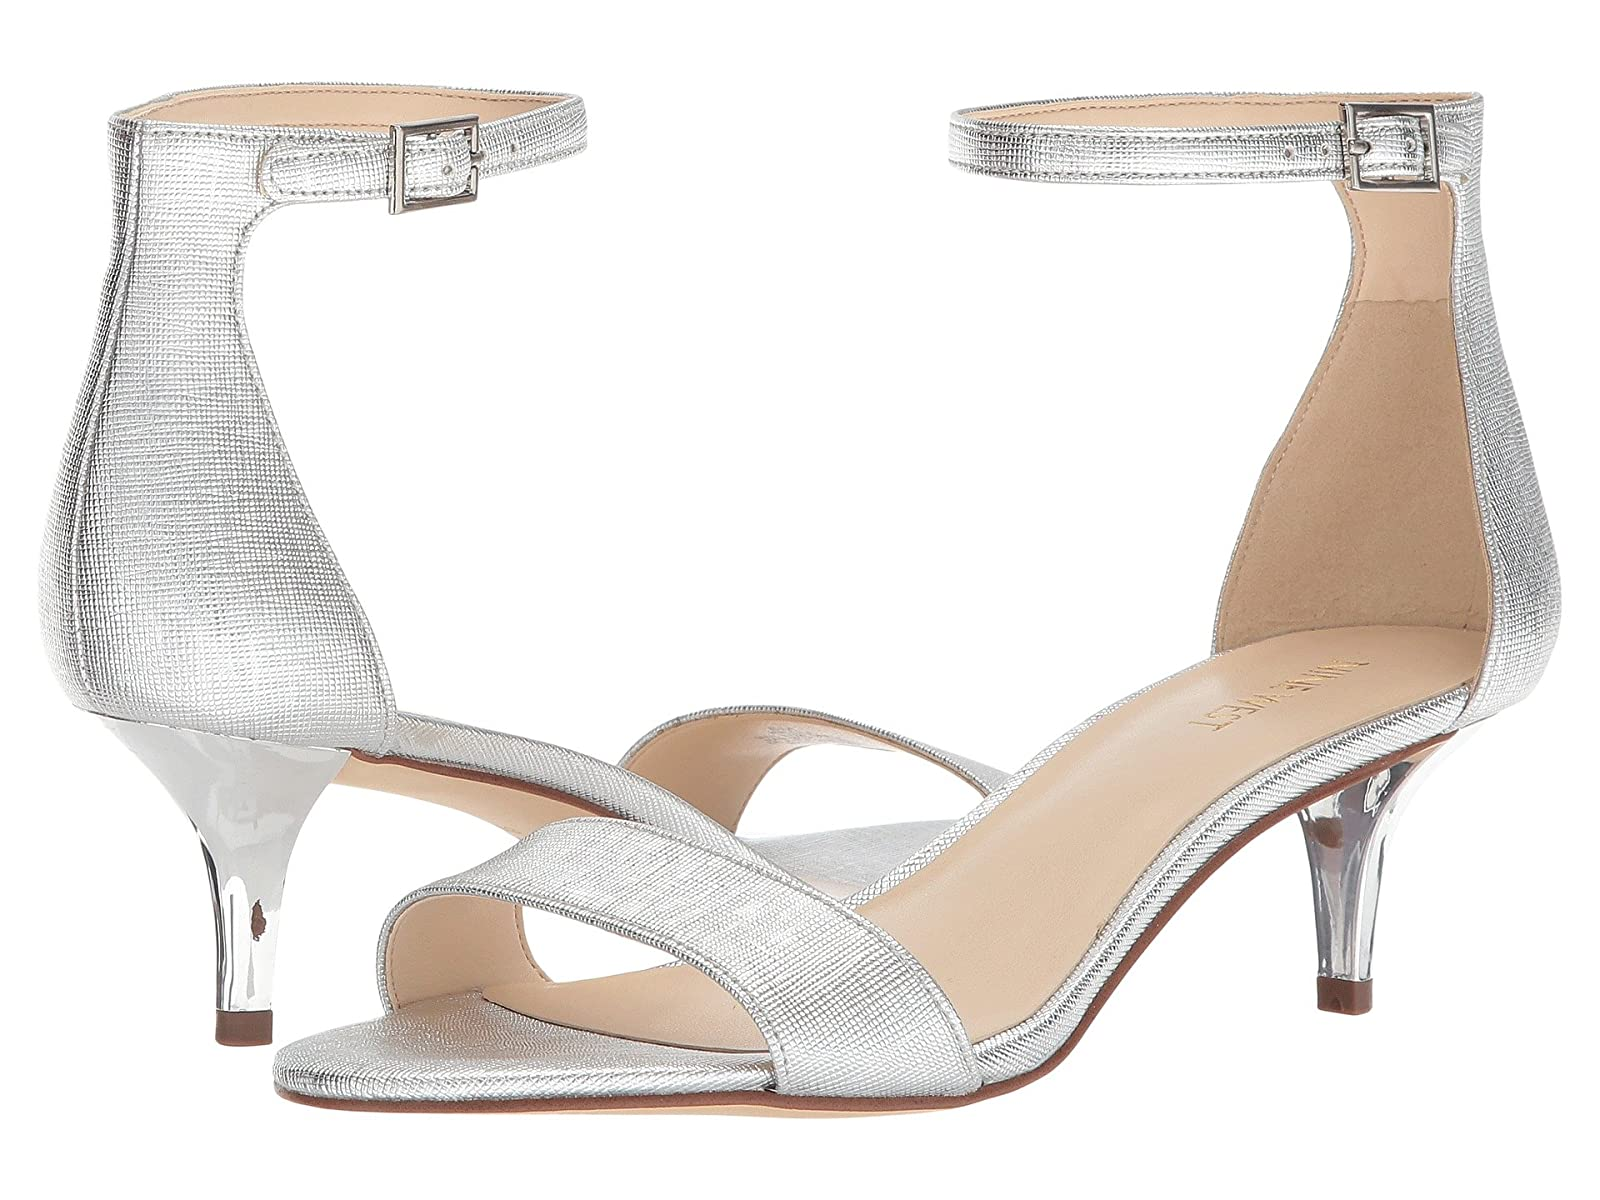 Nine West Leisa Heel SandalAtmospheric grades have affordable shoes